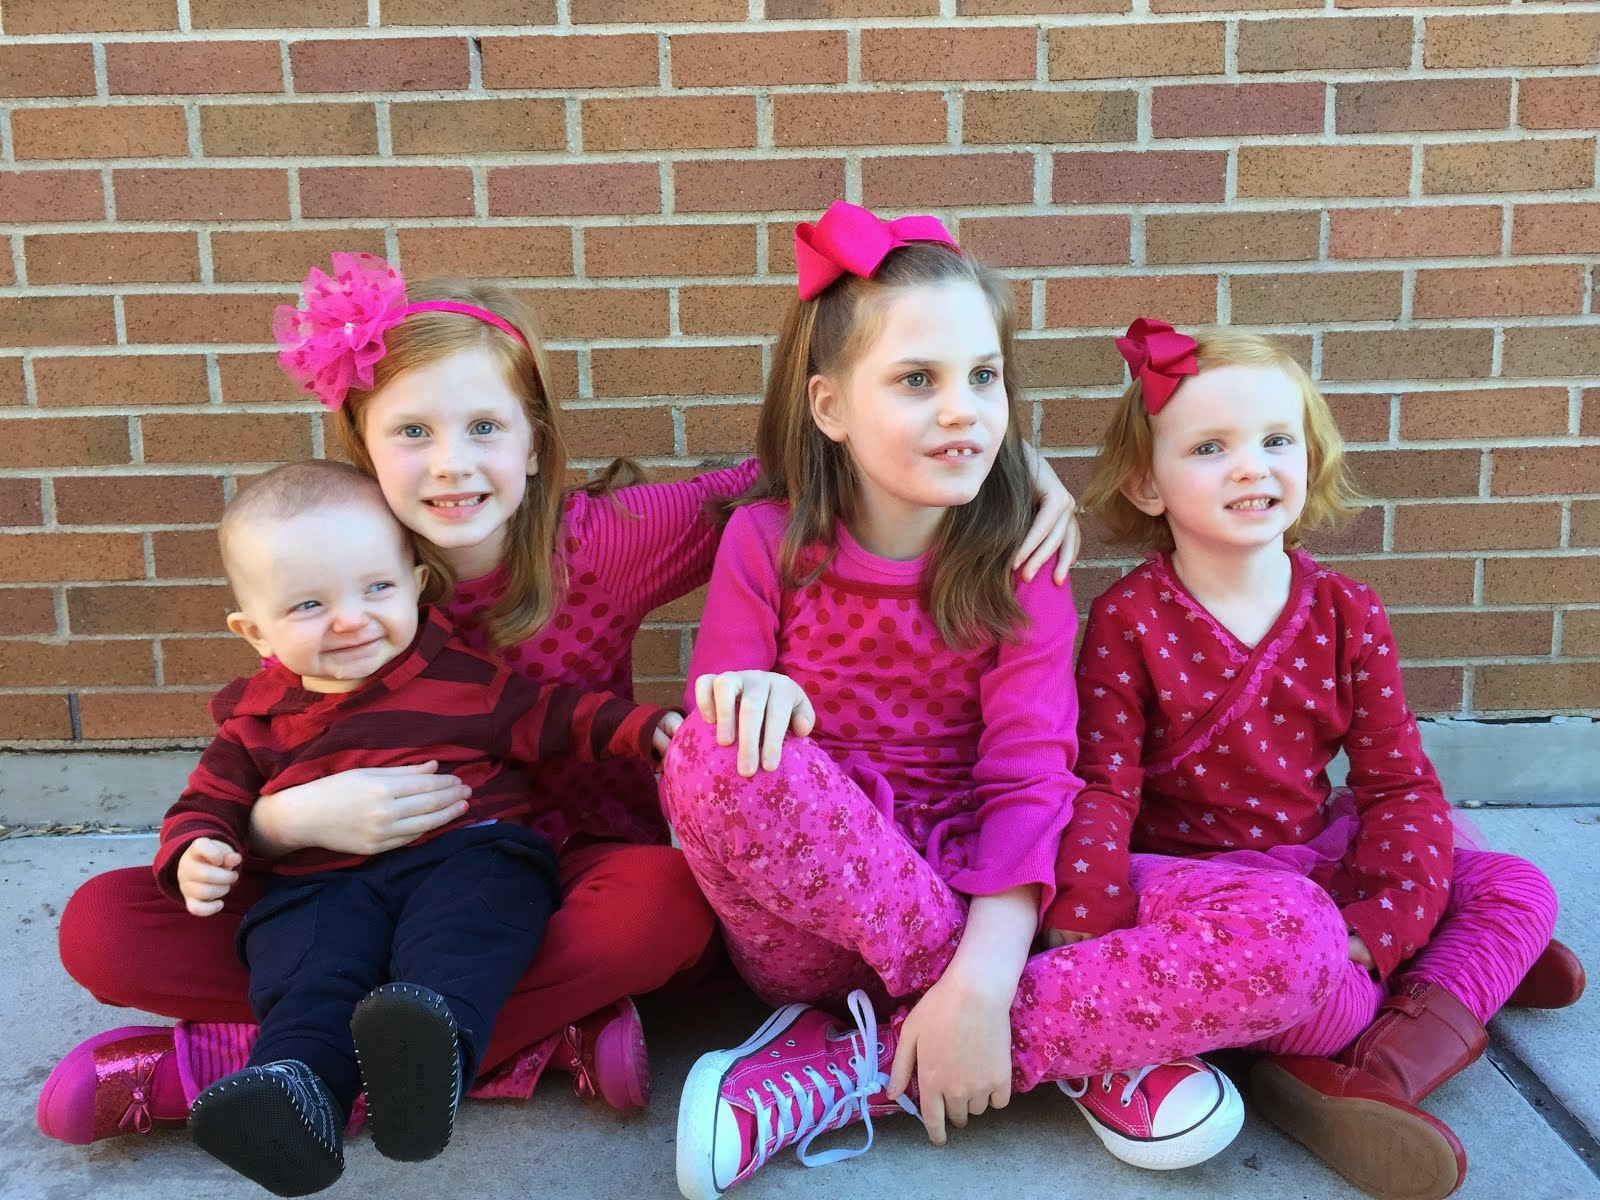 Avery Grace, Kaylin Joy, Presley Hope and Paxton